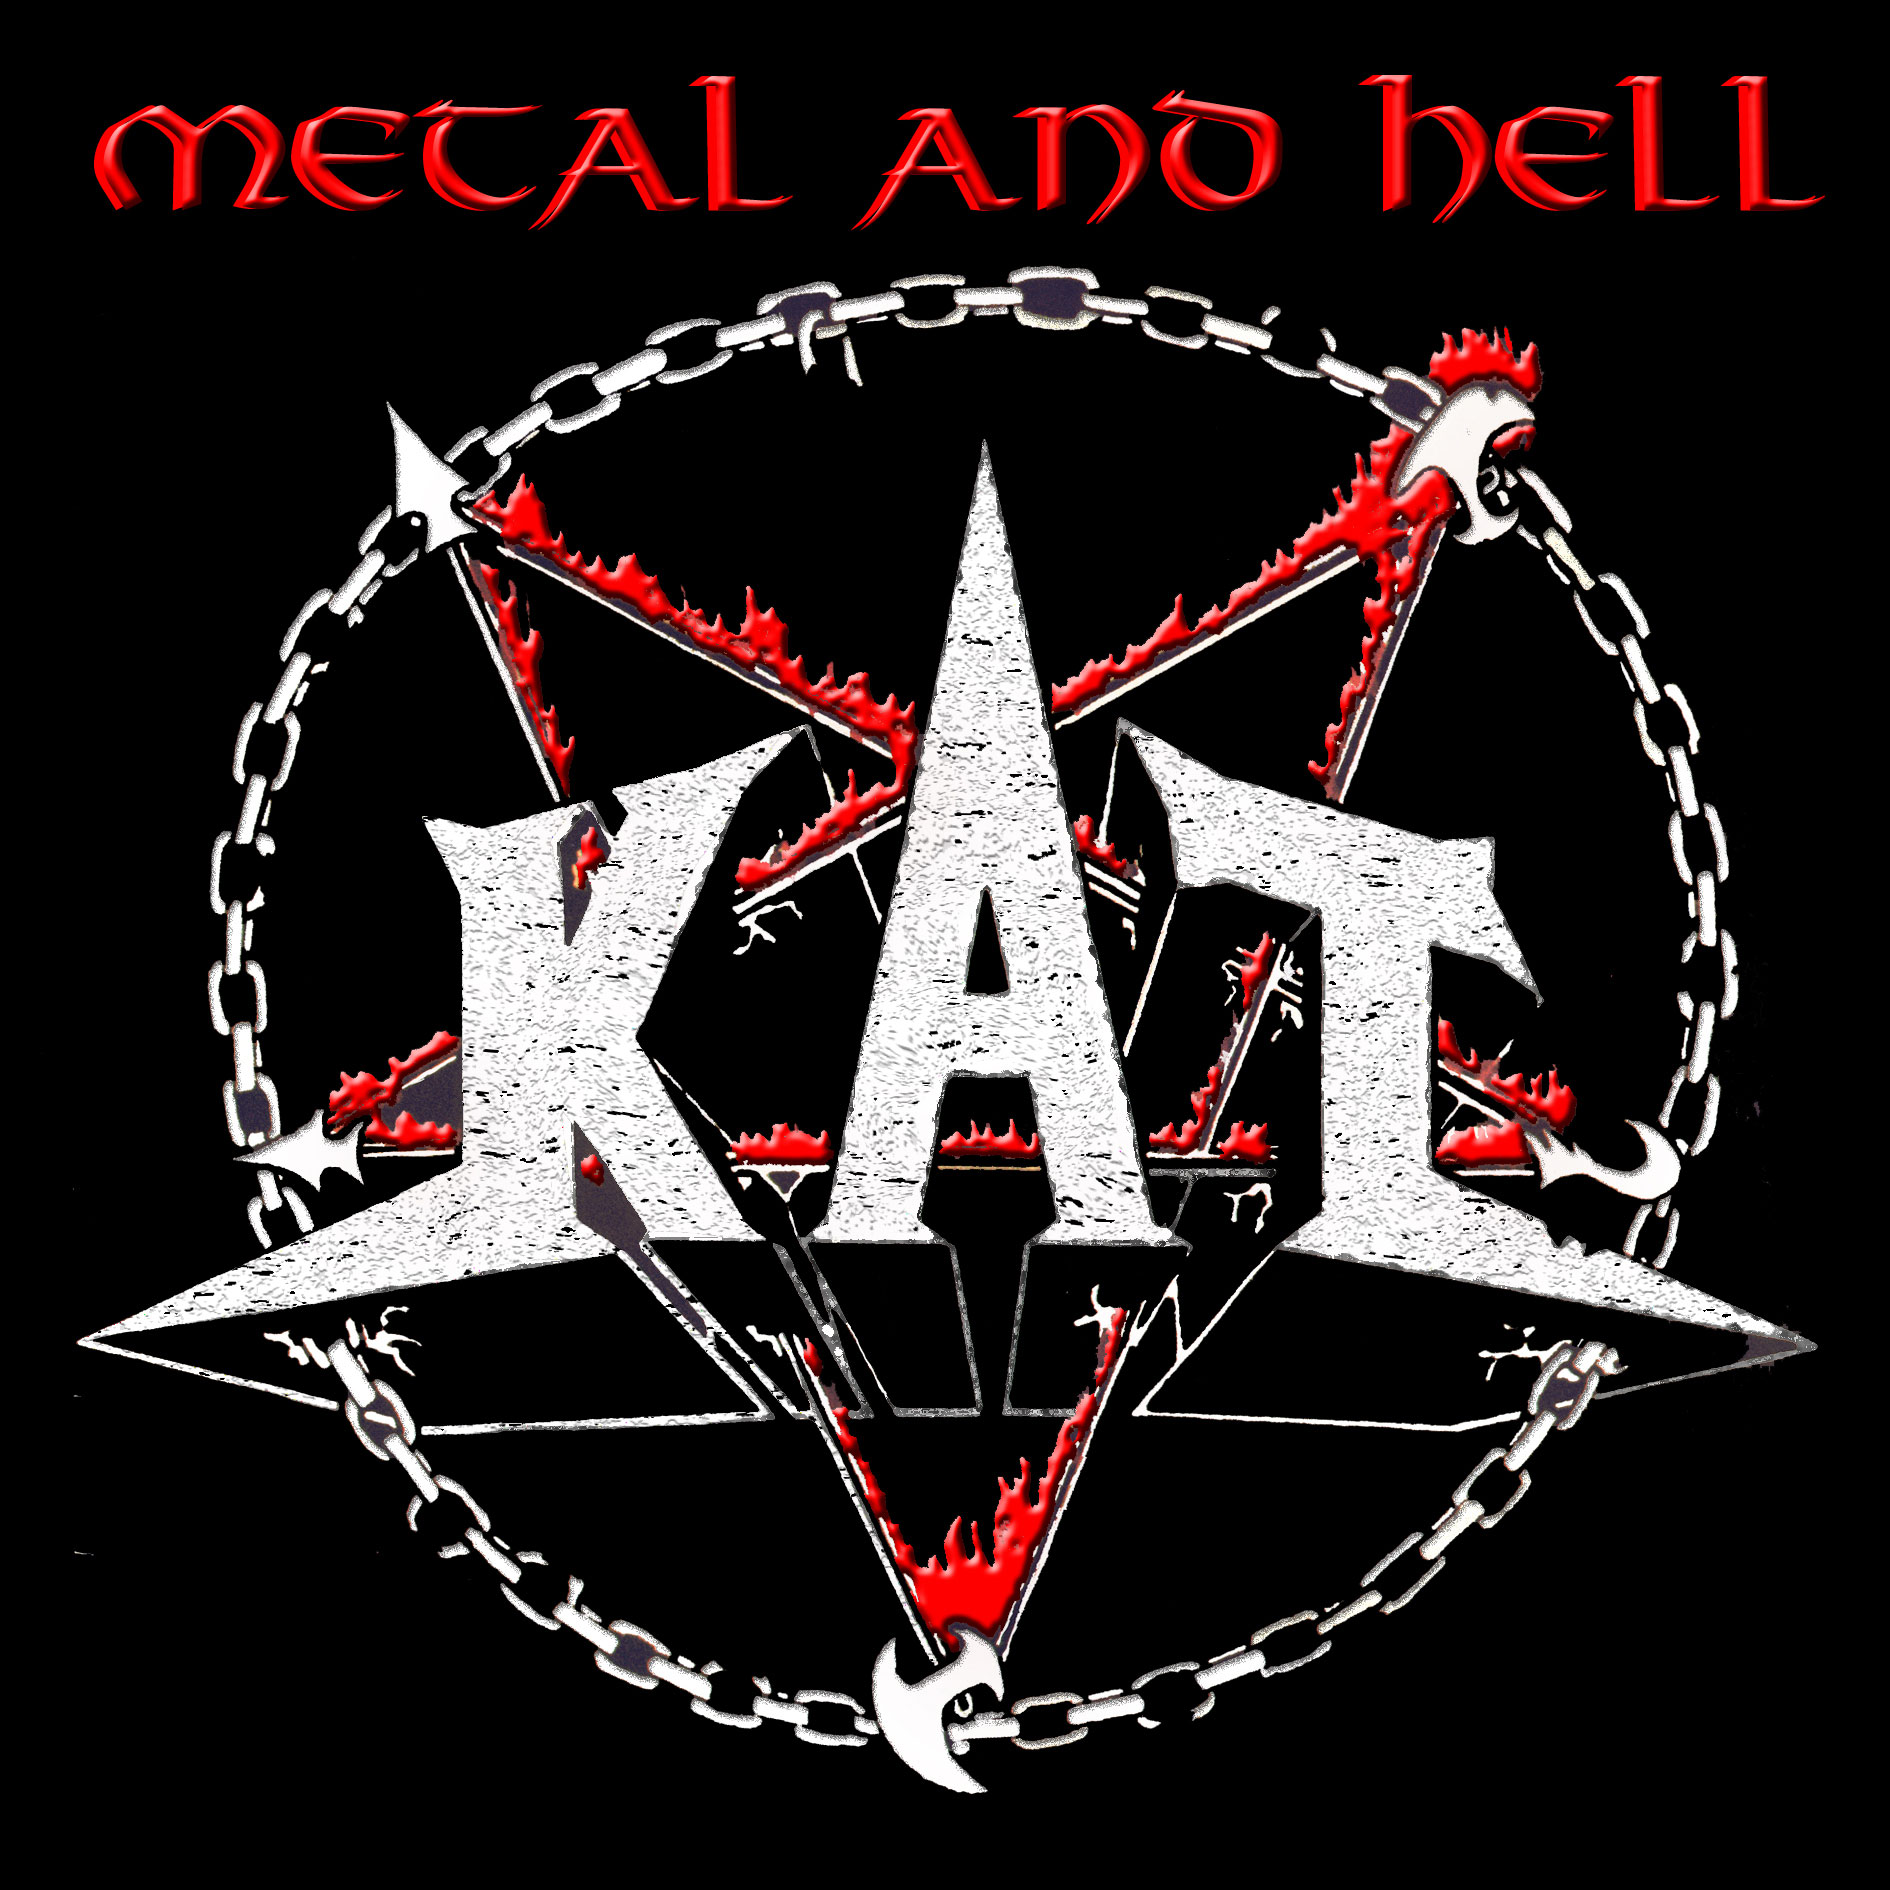 METAL AND HELL